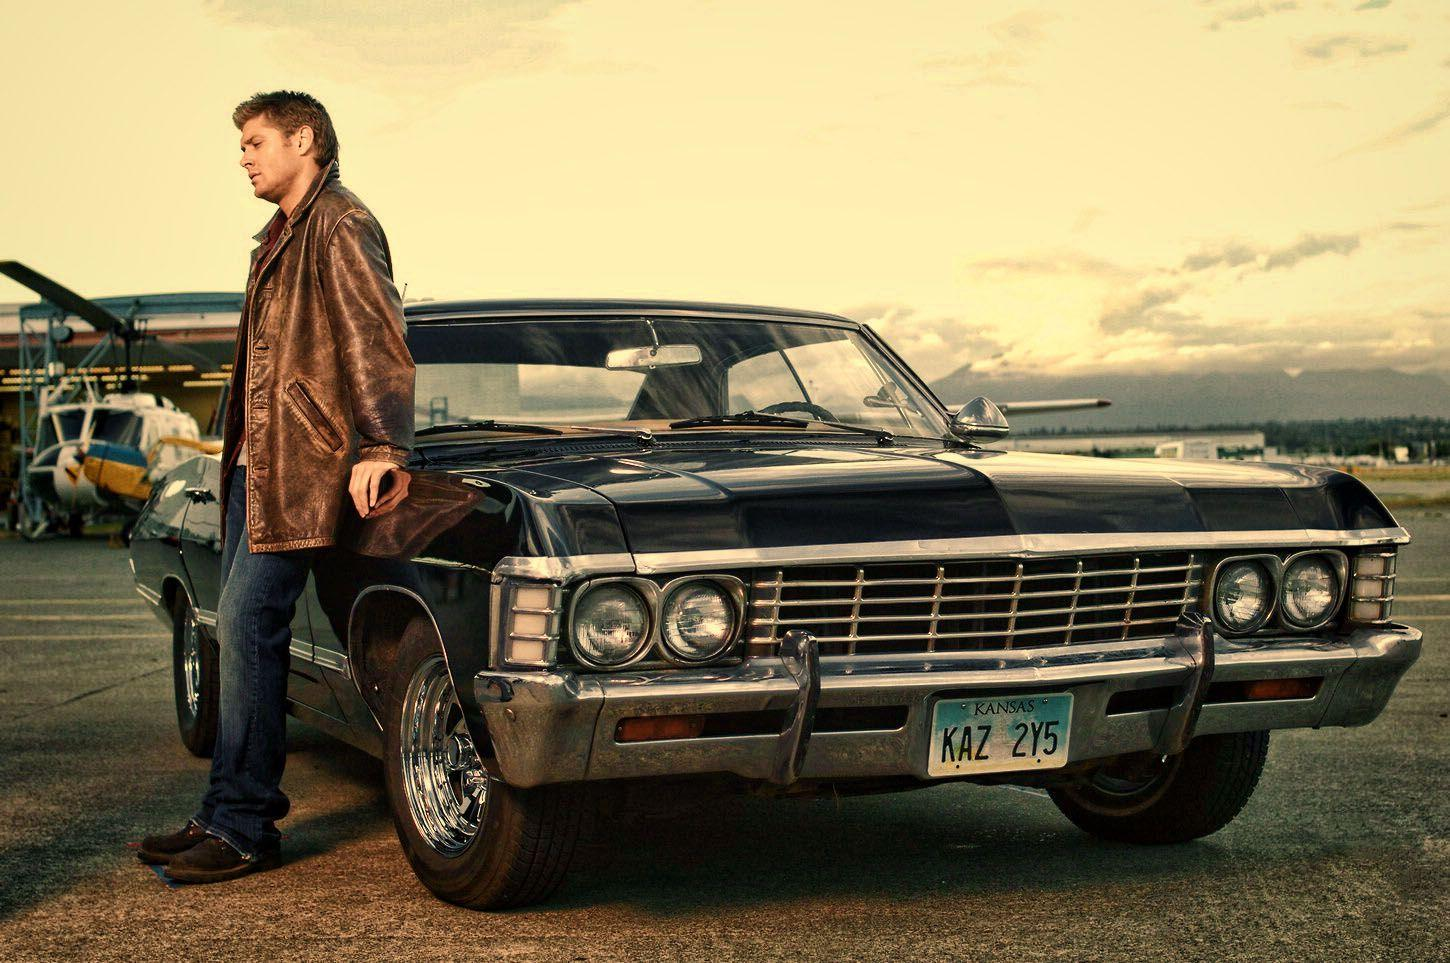 1967 Chevrolet Impala Sport Coupe - Wallpaper #4000 on WallpaperMade